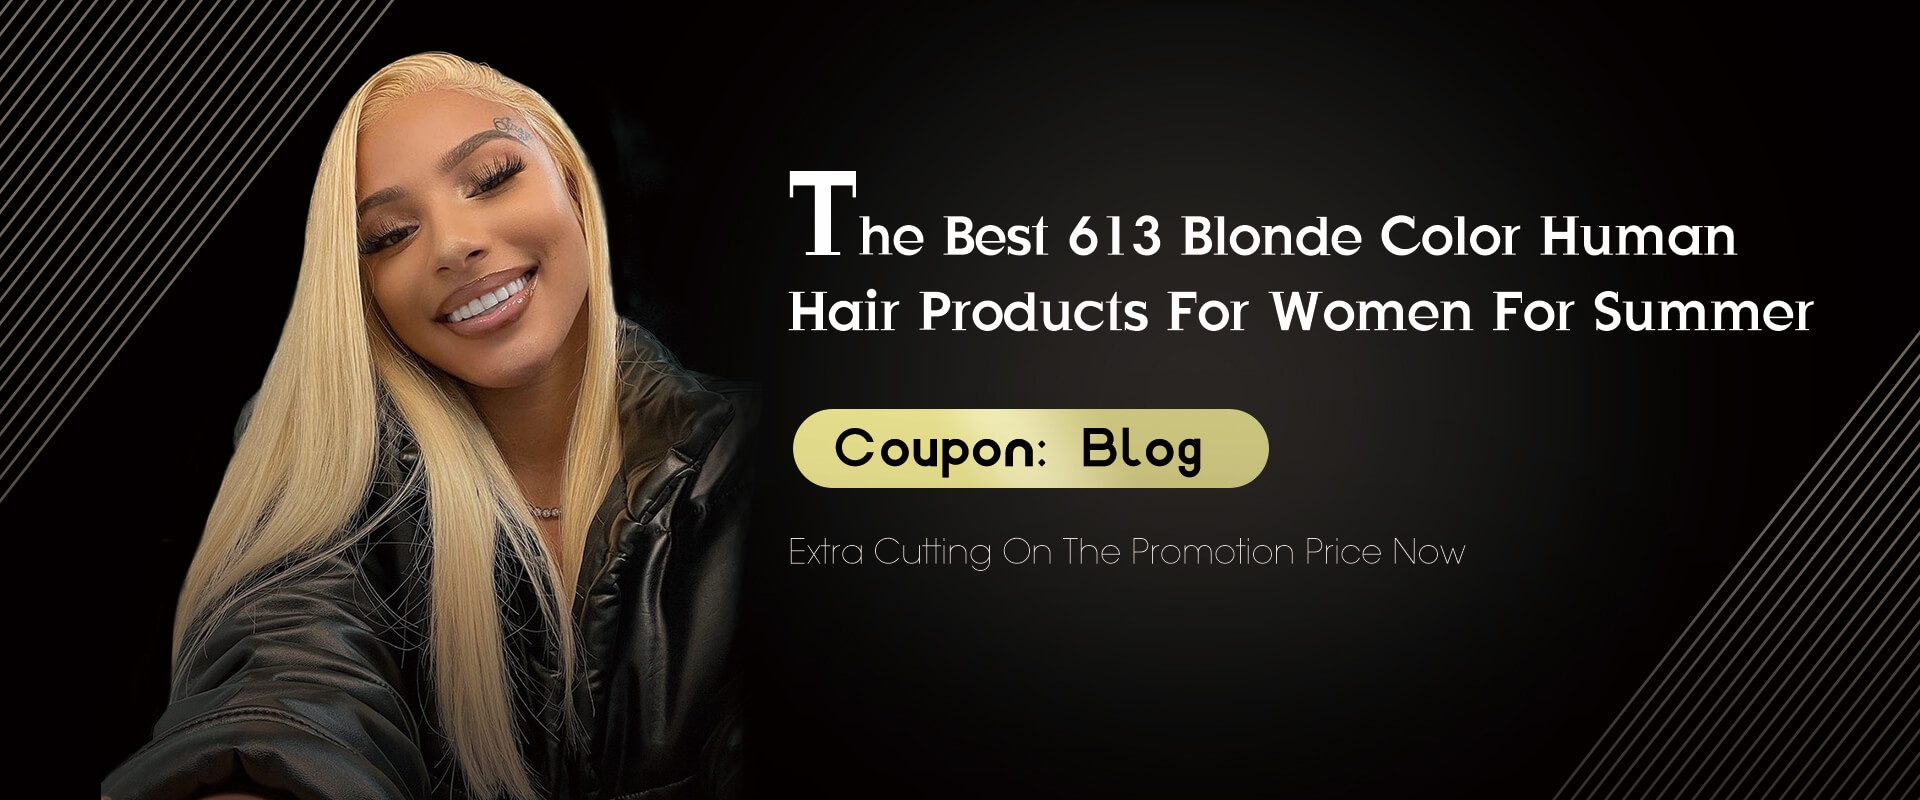 613 blonde wigs for sale now